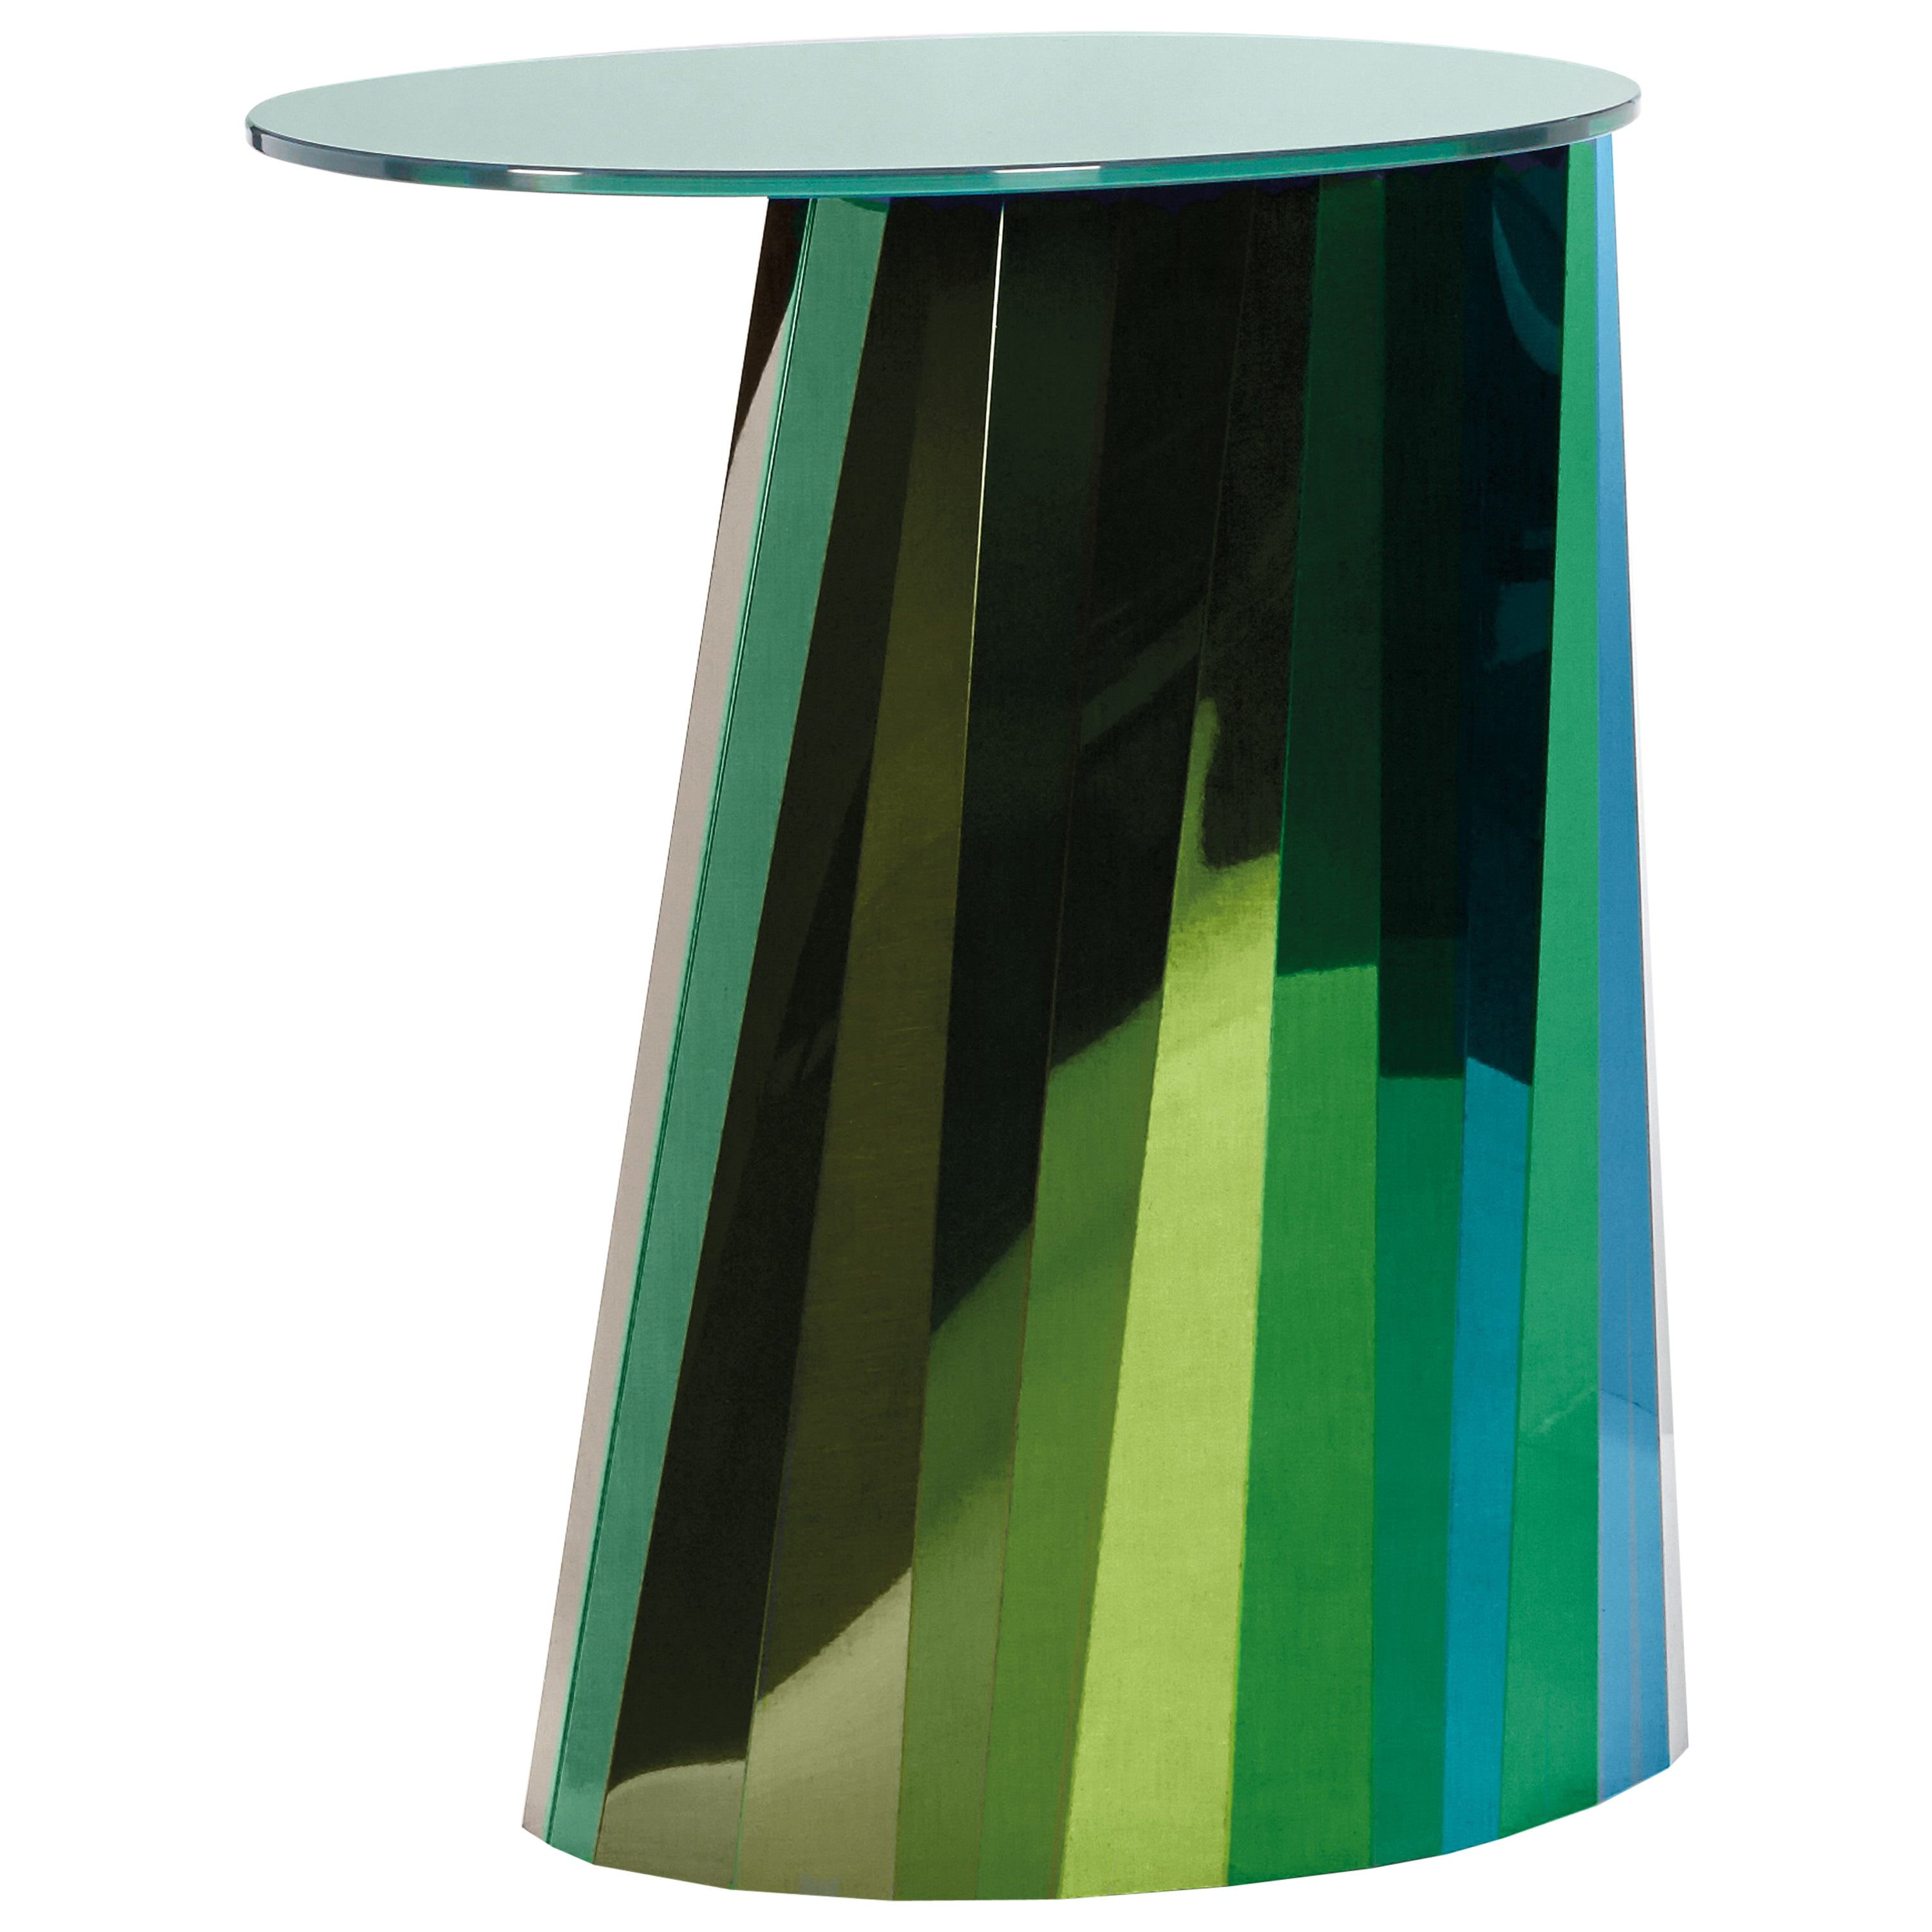 ClassiCon Pli High Side Table in Green by Victoria Wilmotte